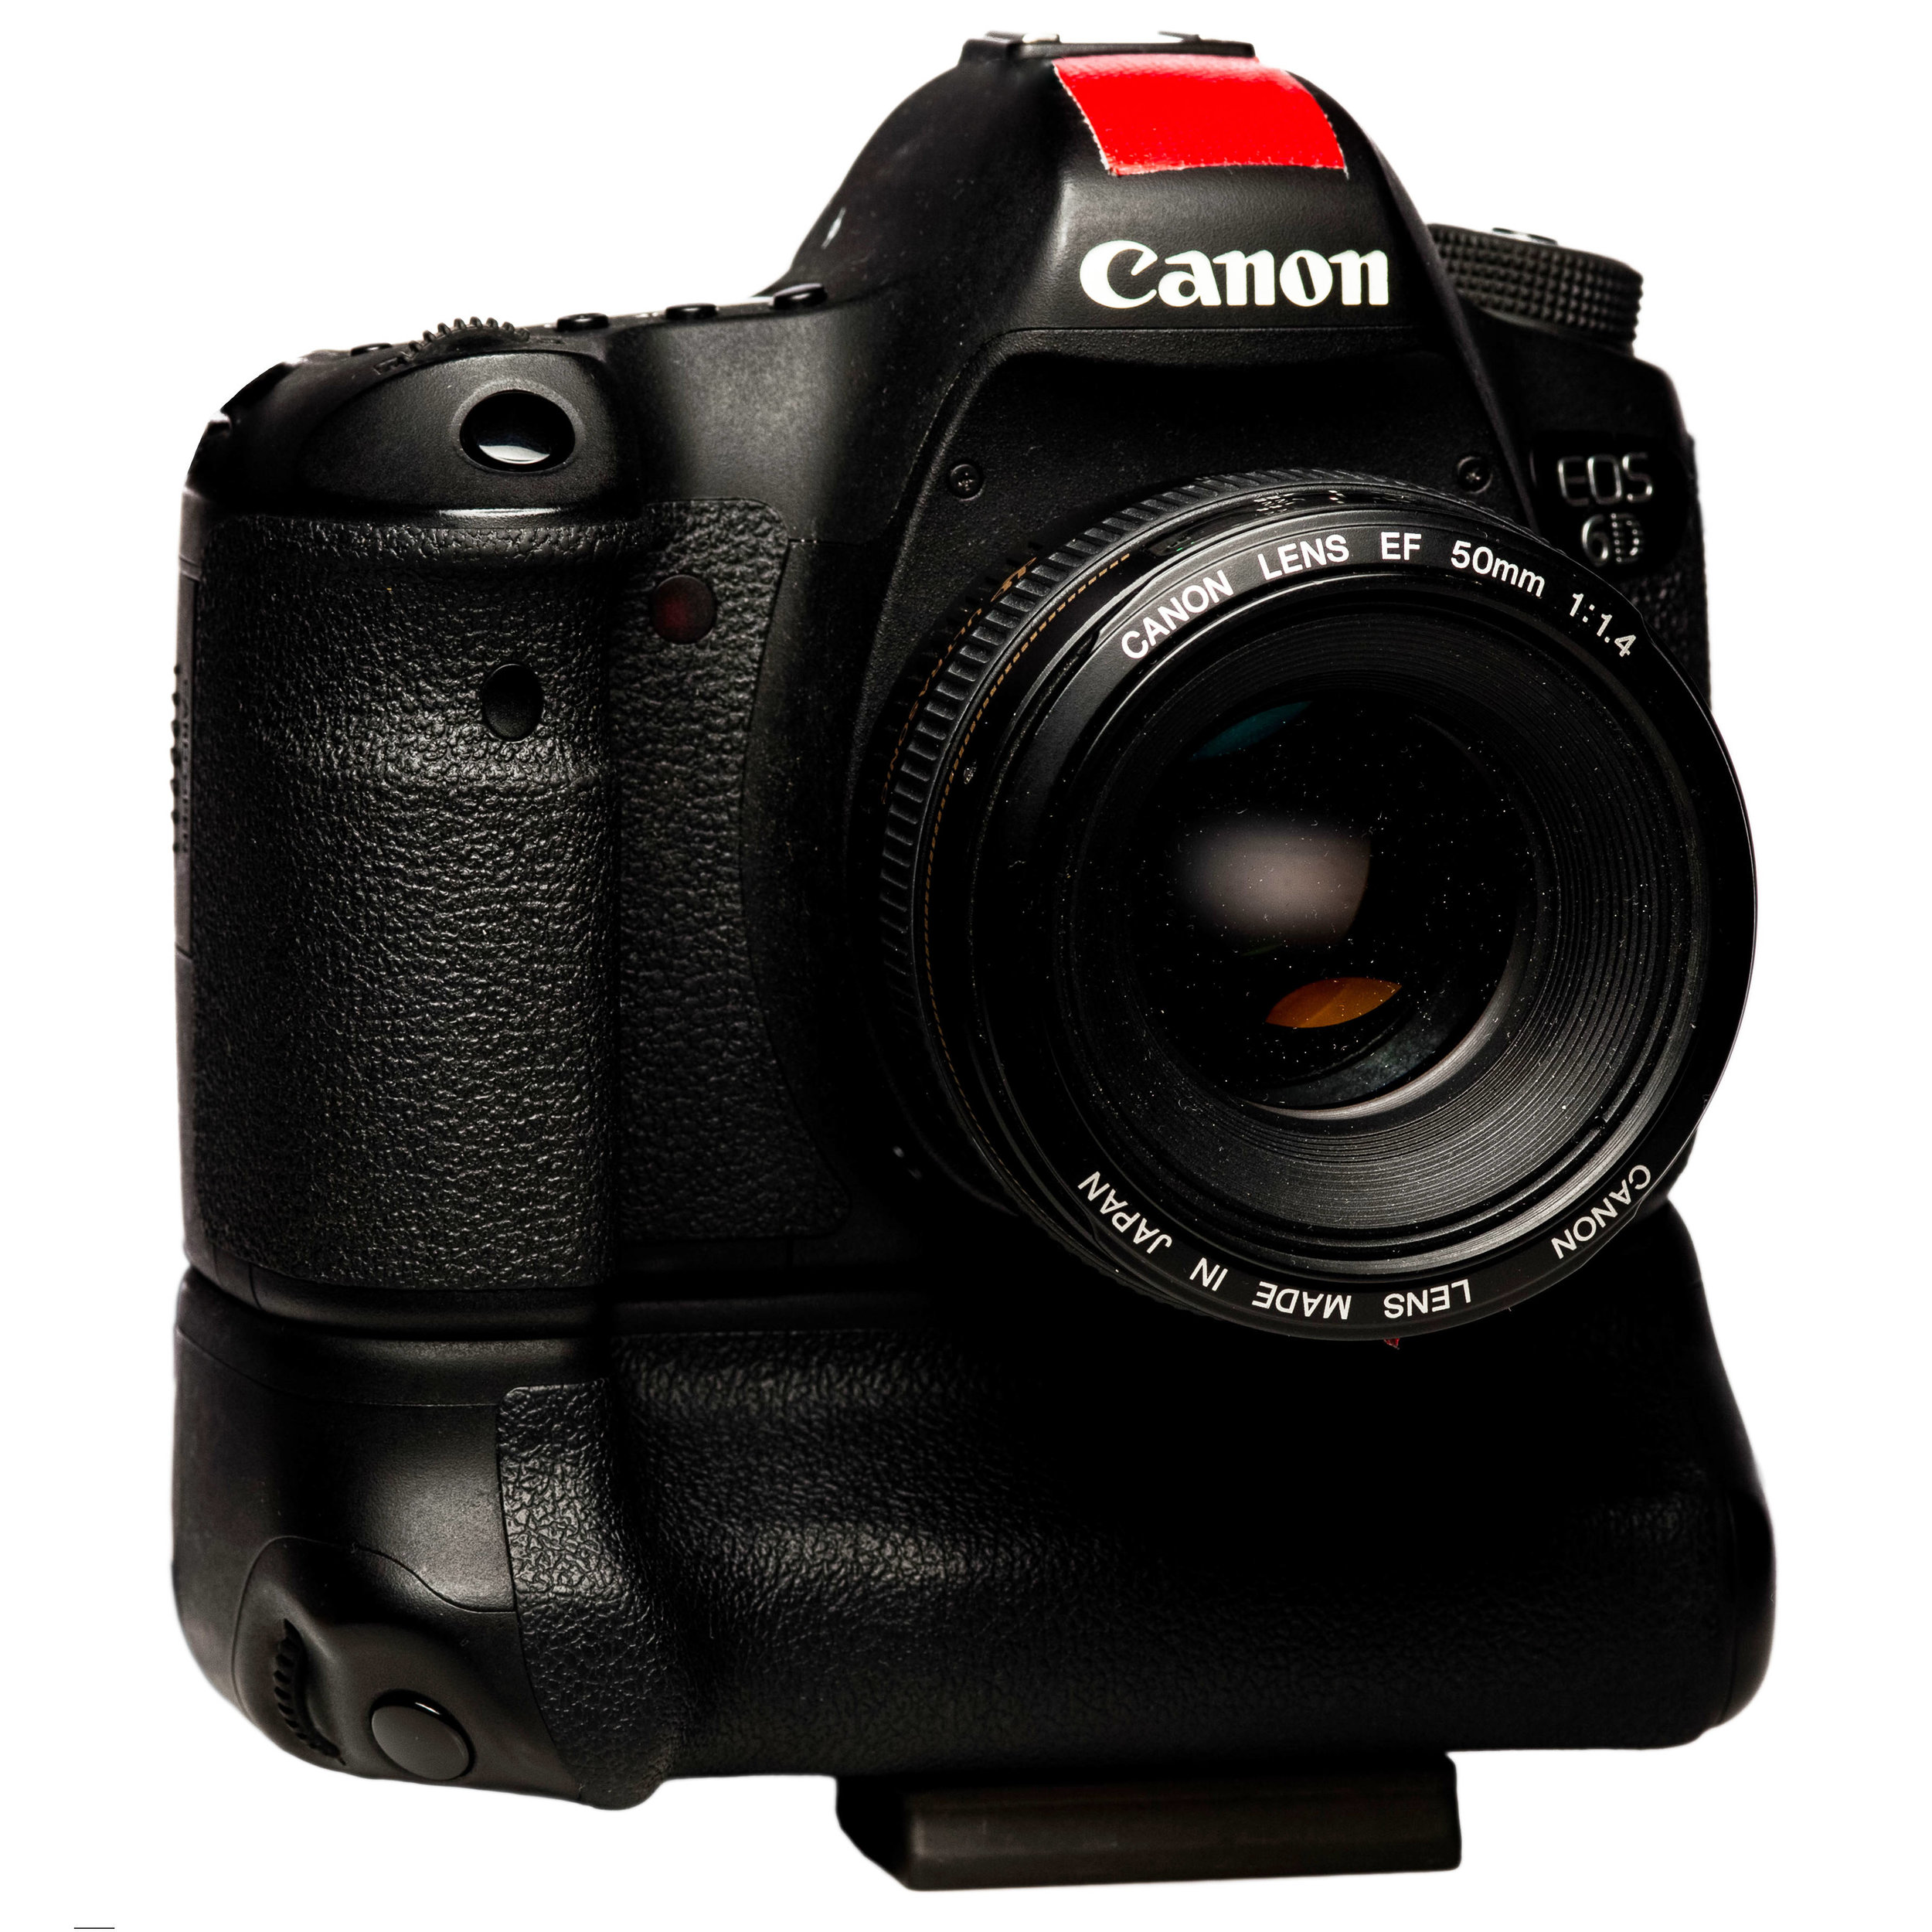 The original 6D for me was the ultimate press photographers tool. It had great low light quality, wireles LAN integrated and many similarities to the wonderfull 5D Mark II. 5 years later the 6D Mark II was expected to be a big leap forward but it failed for many photographers.